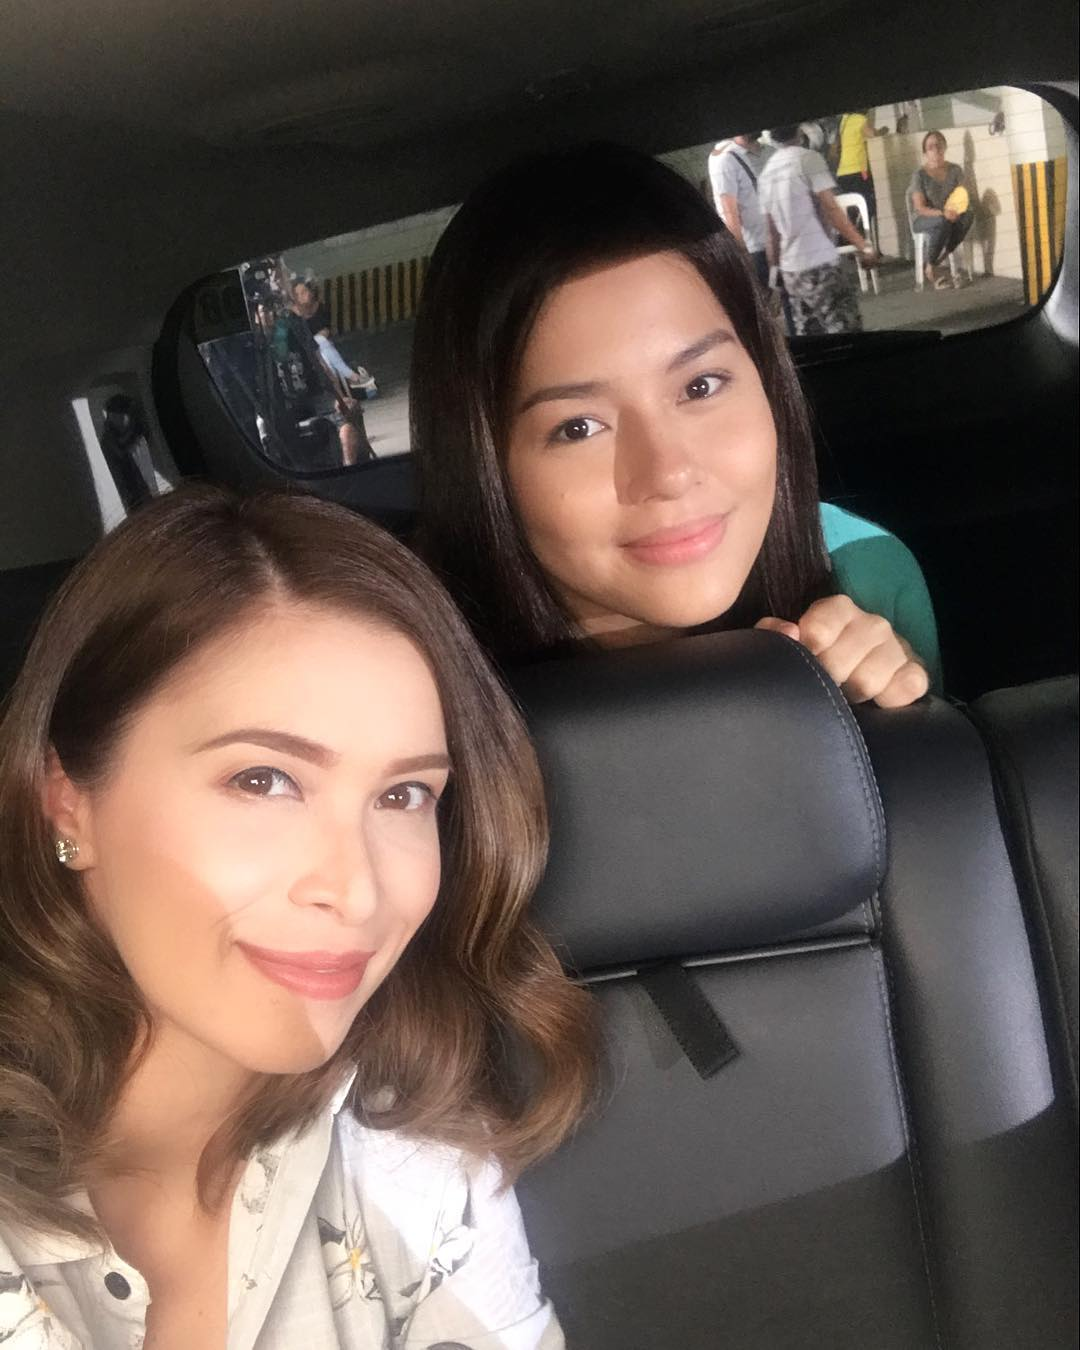 Behind-the-scenes: The women of Wildflower